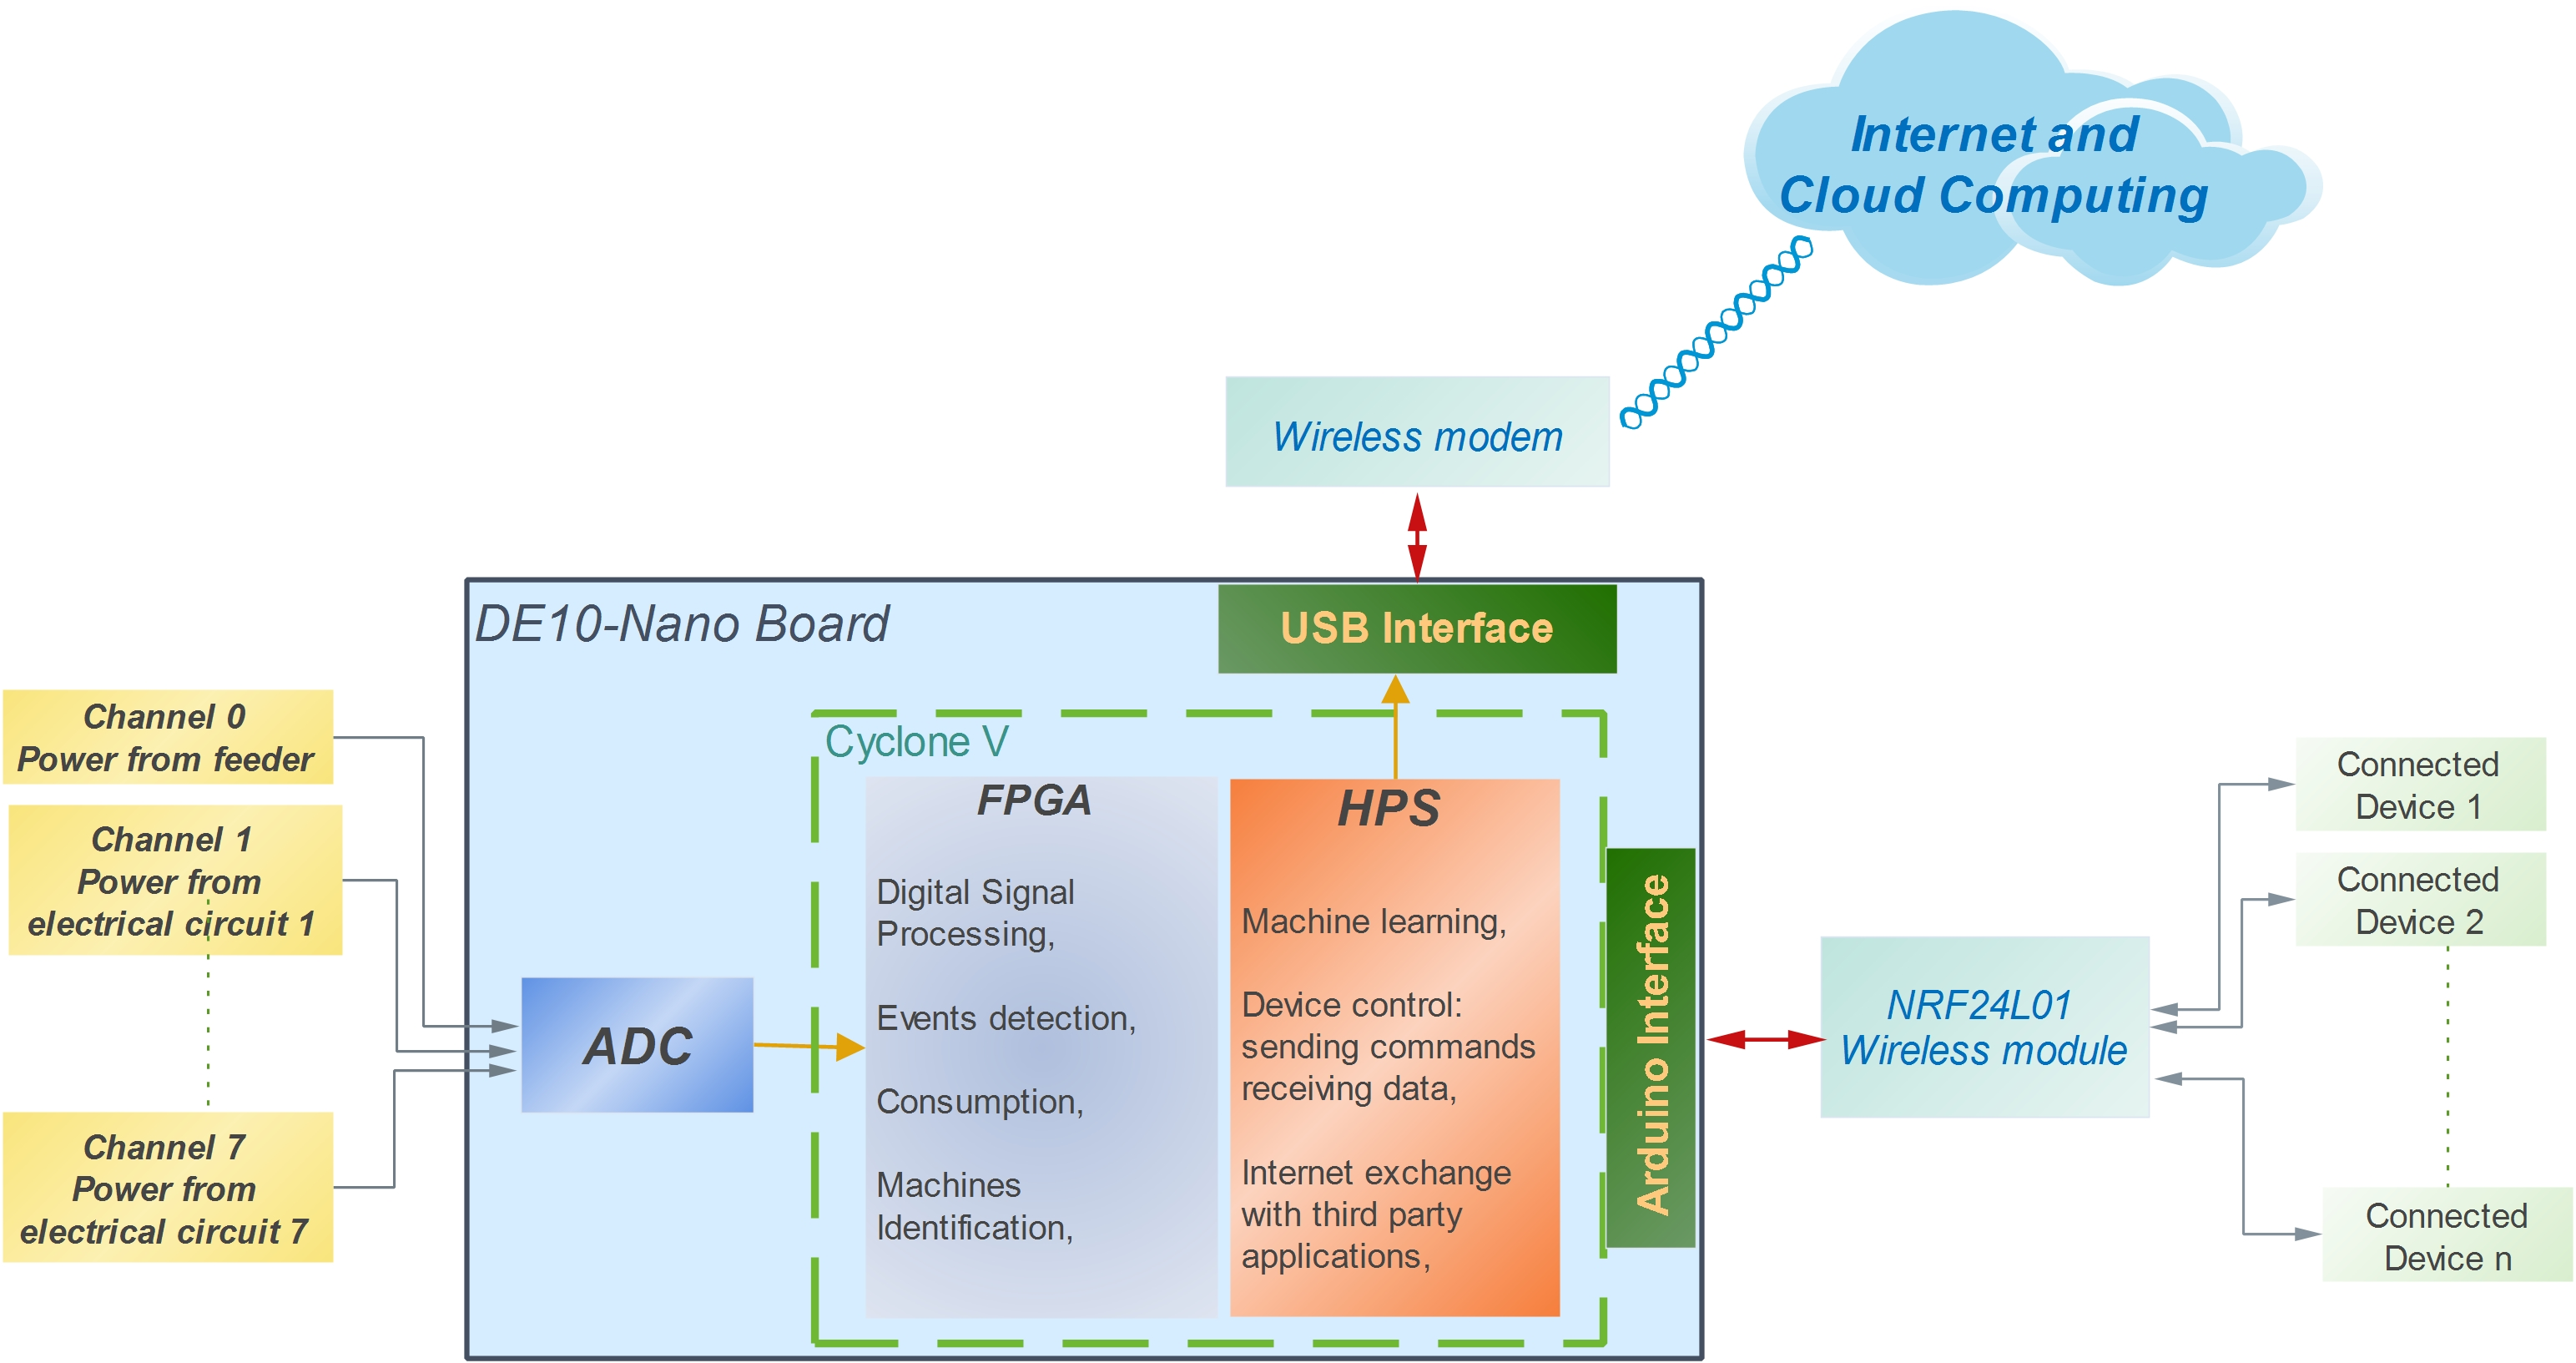 Fig-2: Functional diagram showing environment interactions with DE10-nano board.